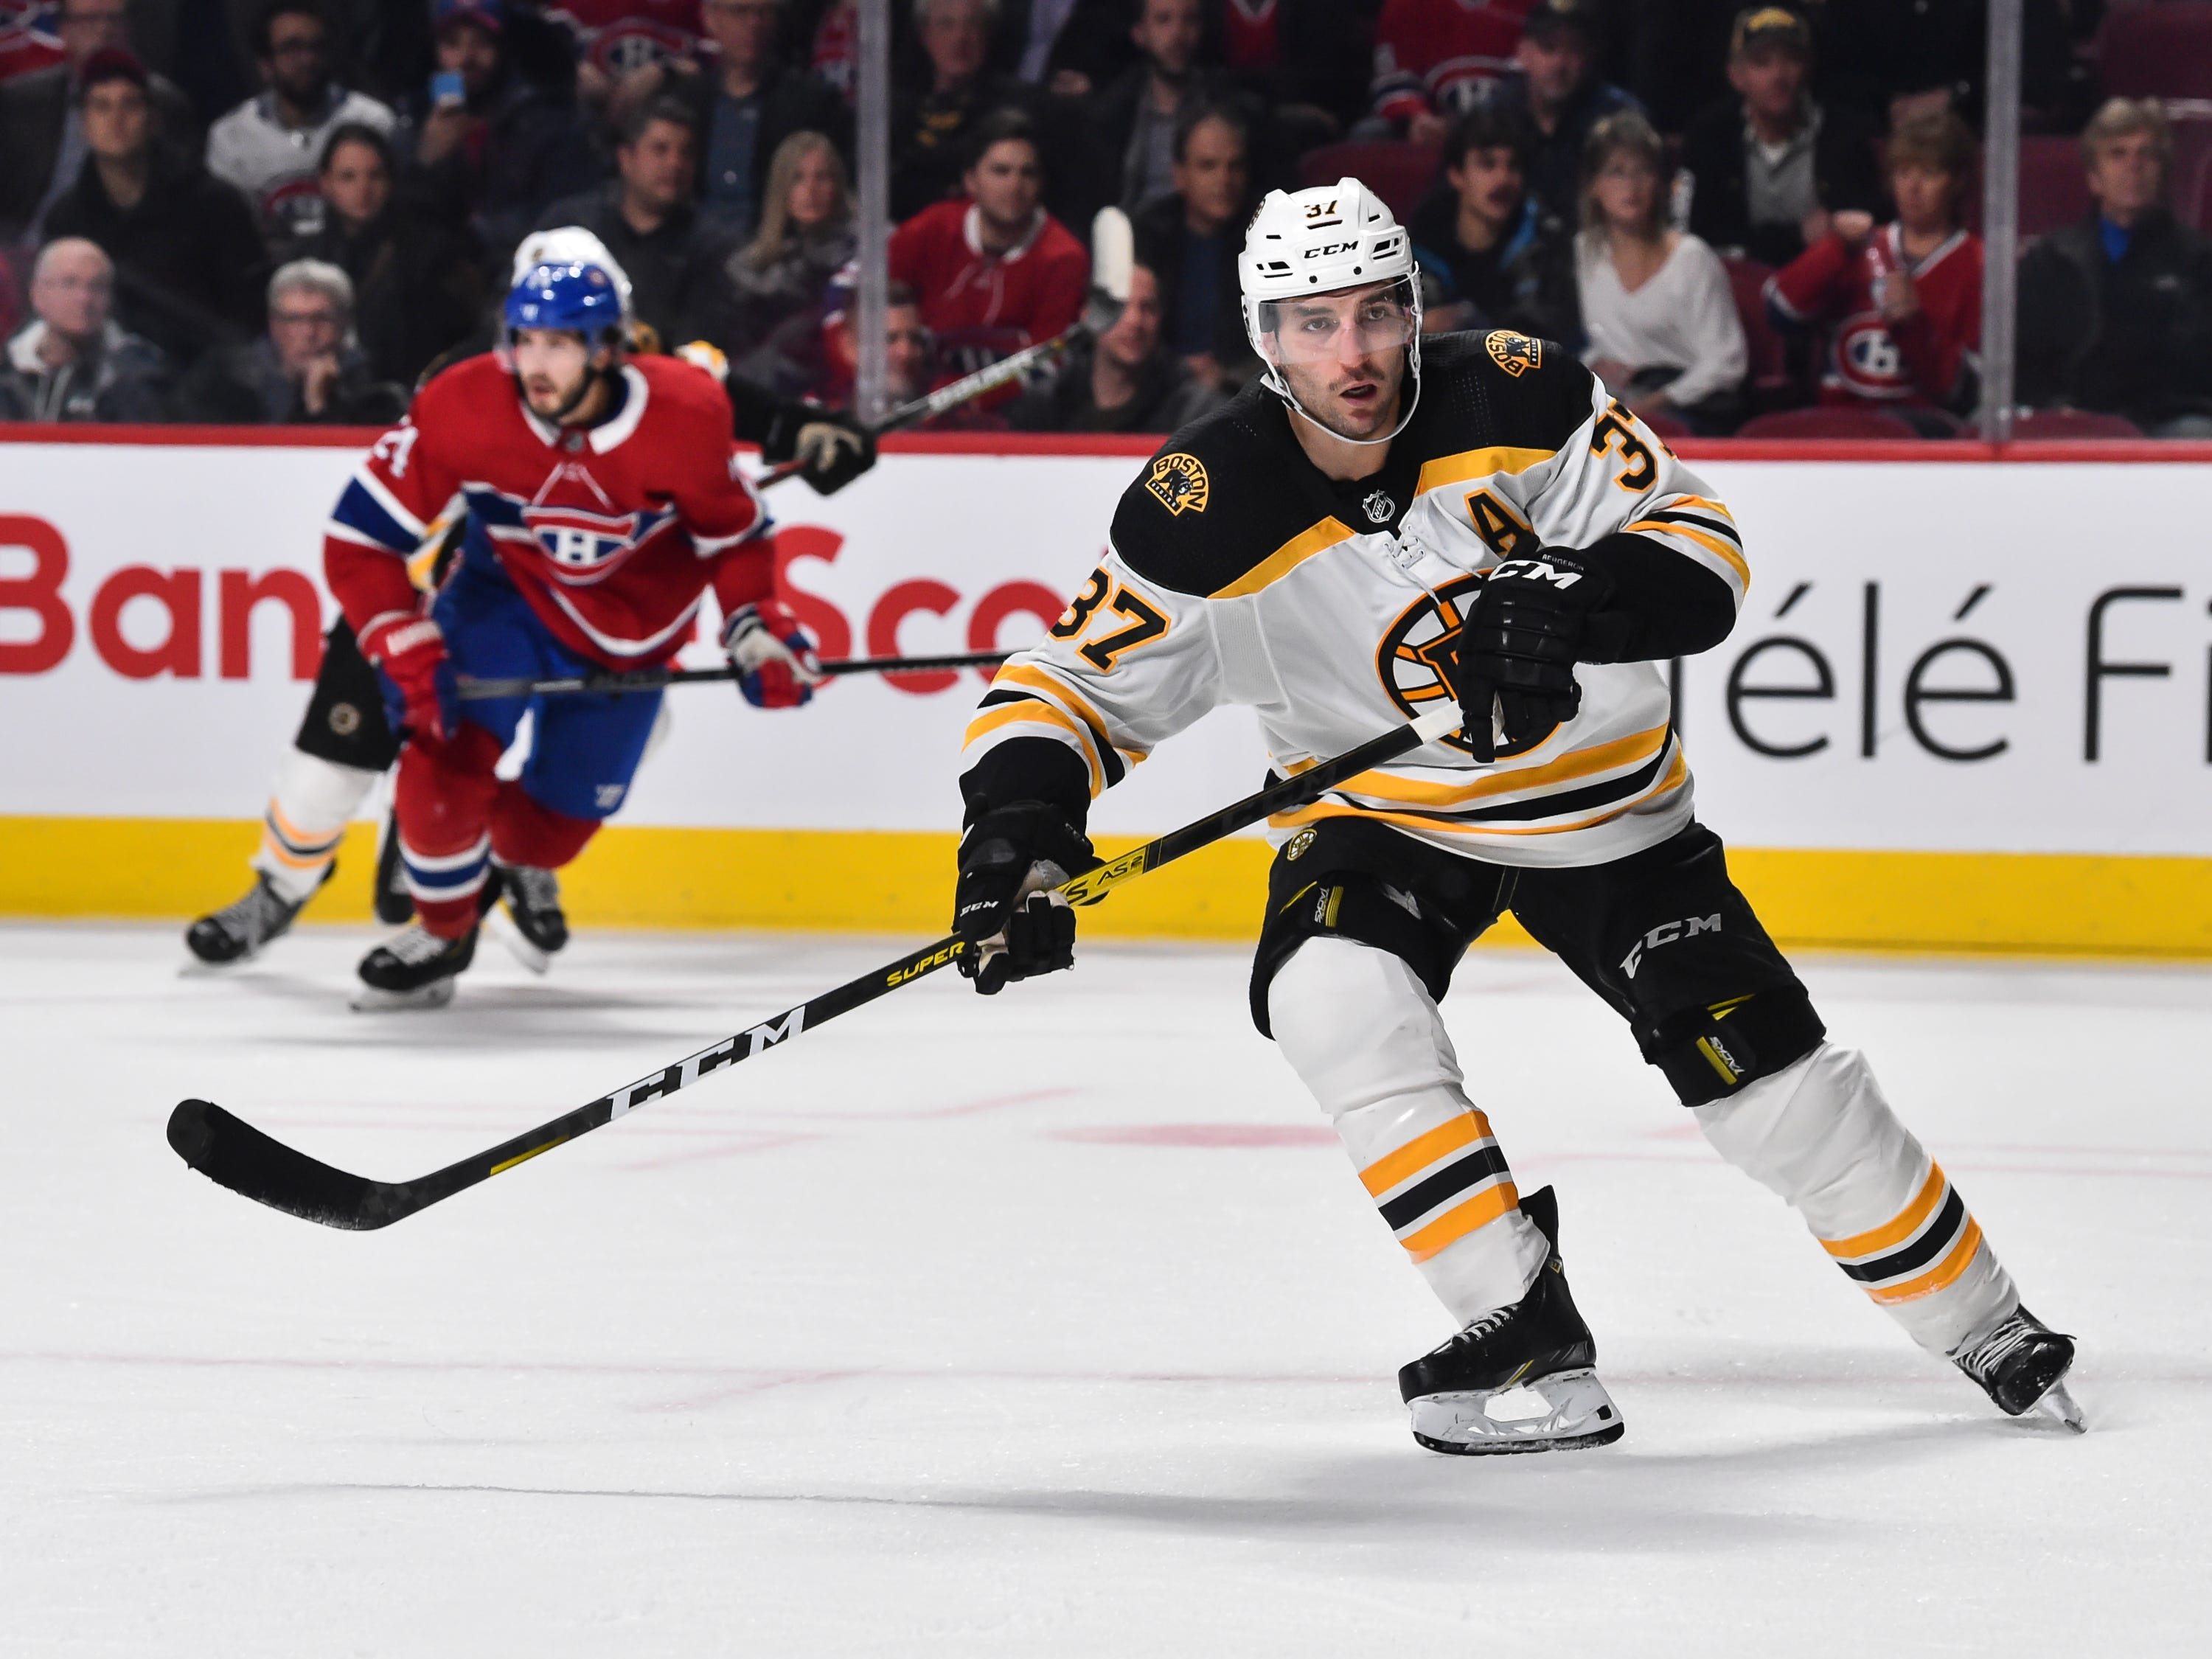 Patrice Bergeron could be among Bruins making return from injury